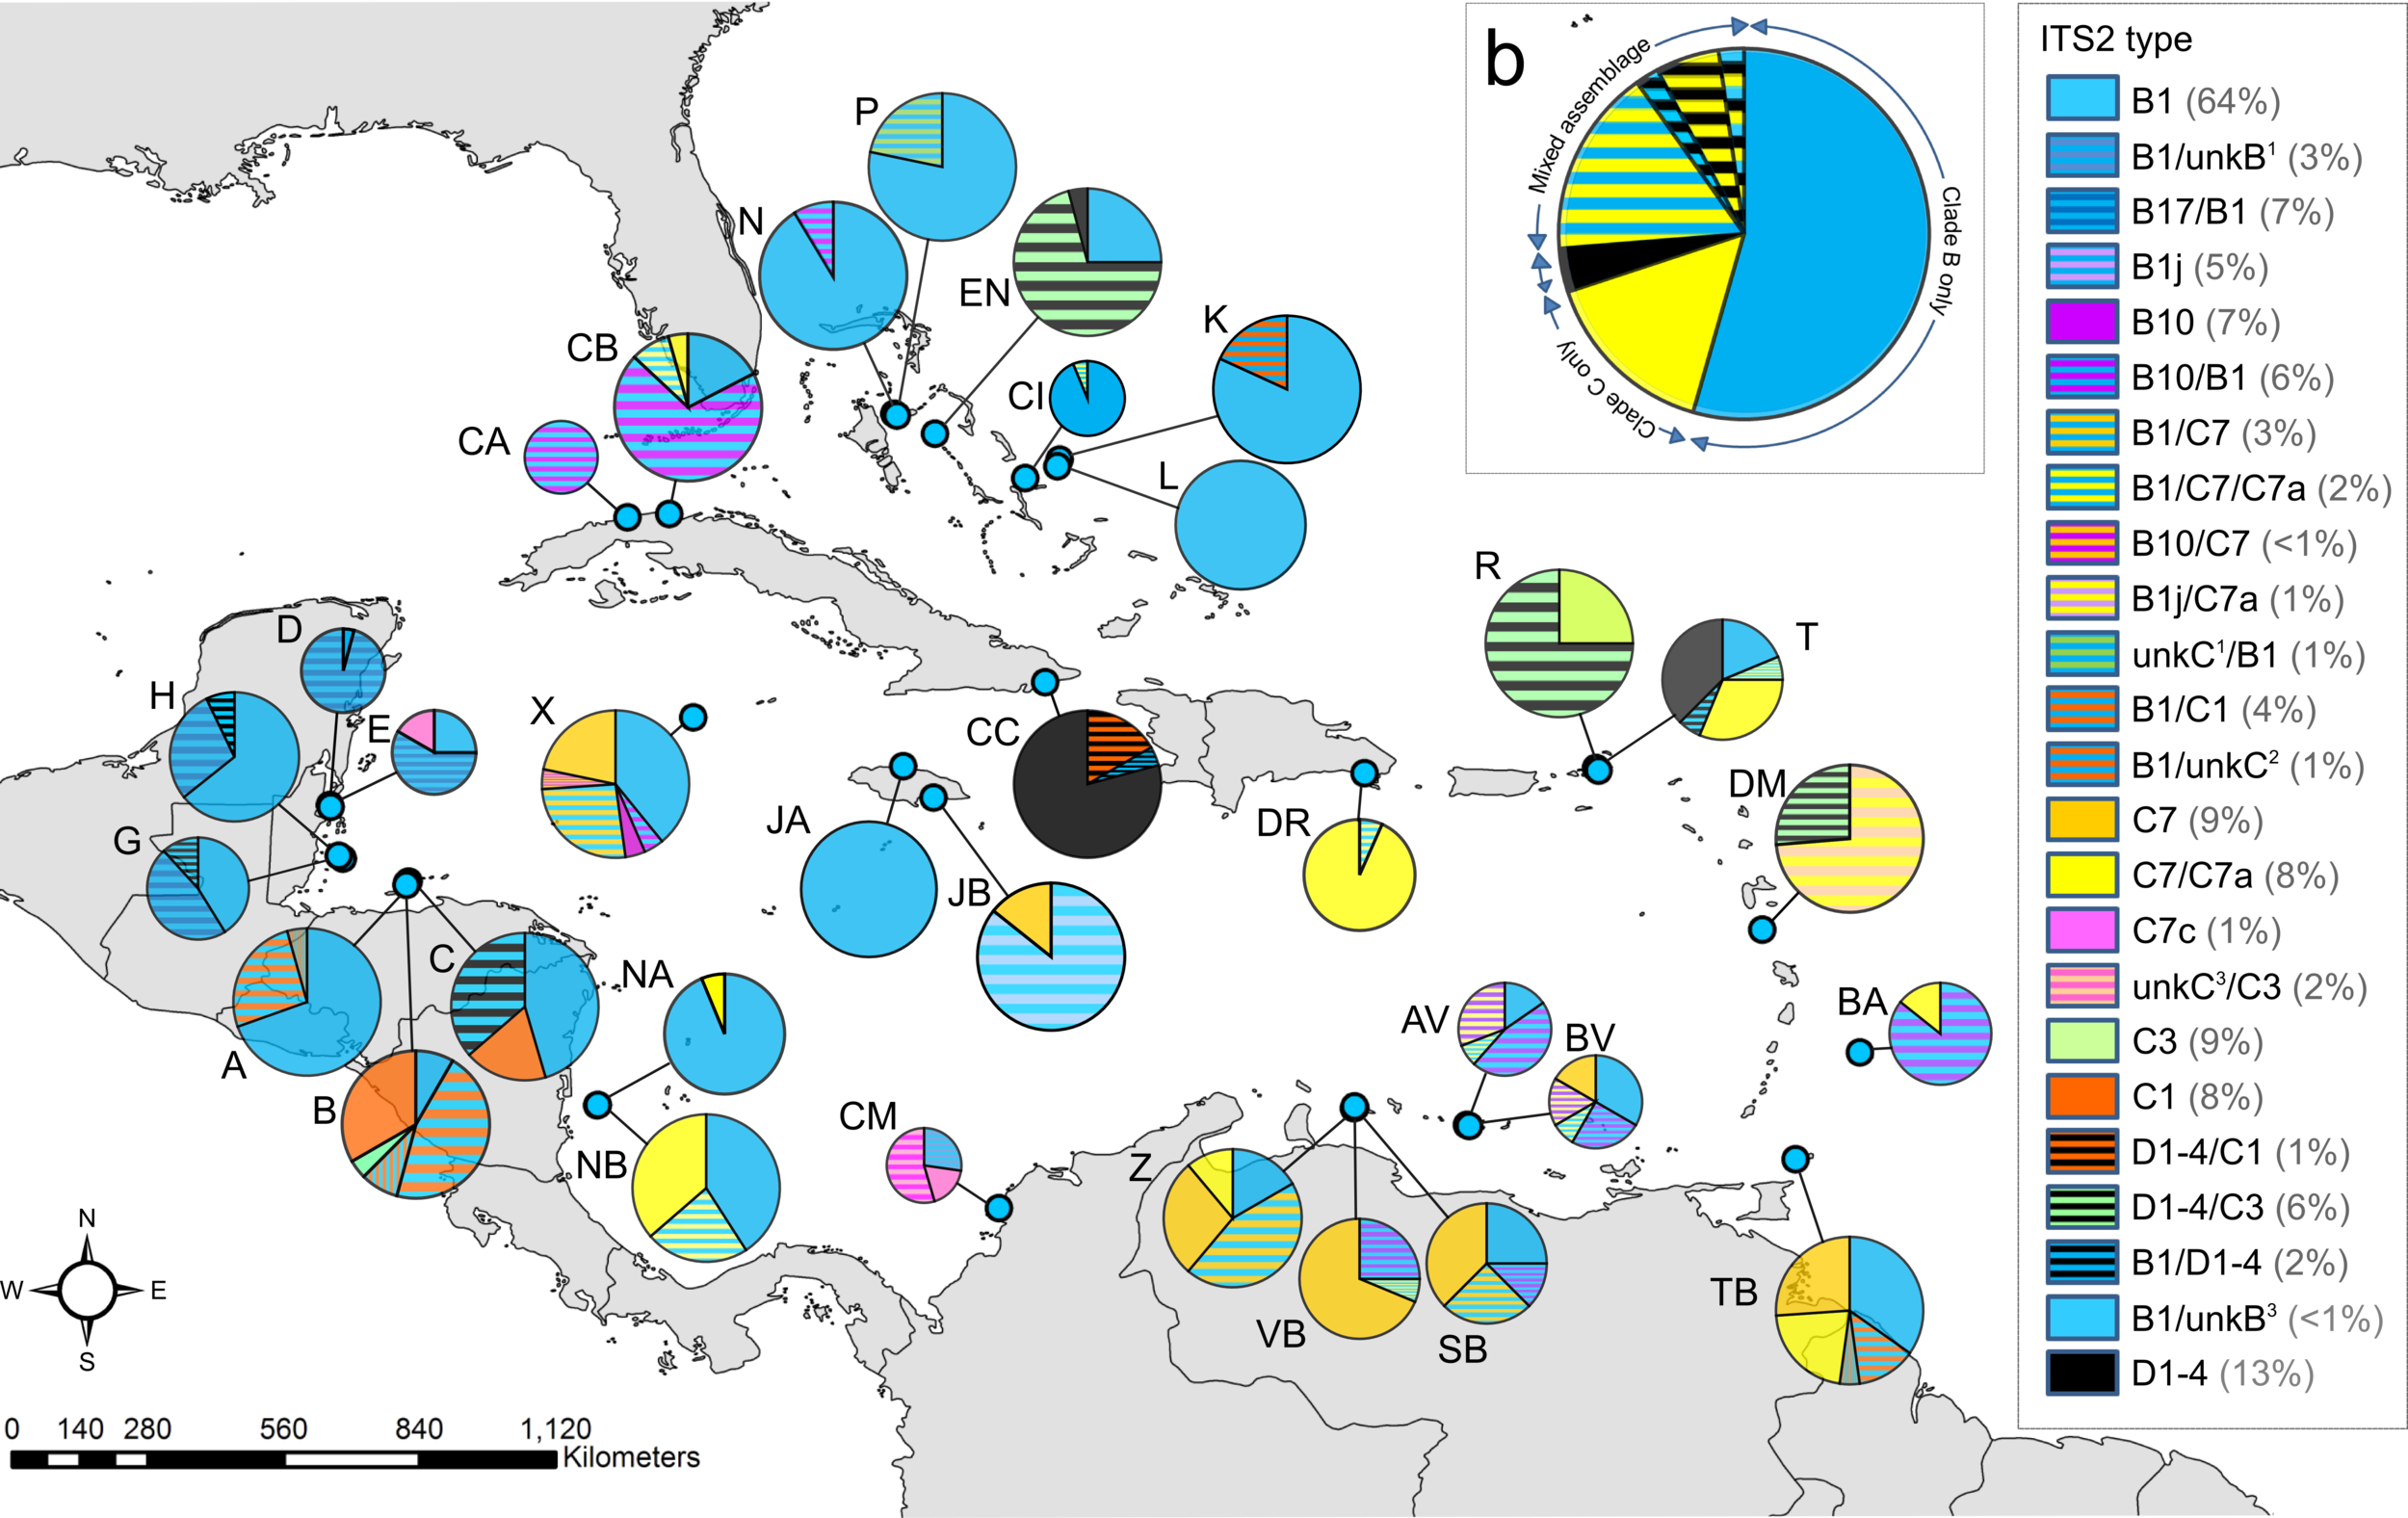 - Map of the Caribbean and Bahamas showing Symbiodinium B types (blue colours), C (yellow) and D (black) types, and combinations (stripes) hosted by Orbicella annularis populations on 33 different coral reefs. Only dominant types (or combinations of types) are represented. Pie chart size reflects colony sample size (minimum 11, maximum 24, total 632), numbers in parenthesis indicate proportion of total colonies that each type was dominant in. More blue (clade B) is apparent in the northwest and Bahamas, with more mixed assemblages dominated by clade C (yellow) in the southeast and Lesser Antilles. Inset: pie chart representing clade types found hosted by O. annularis for the entire Wider Caribbean area.